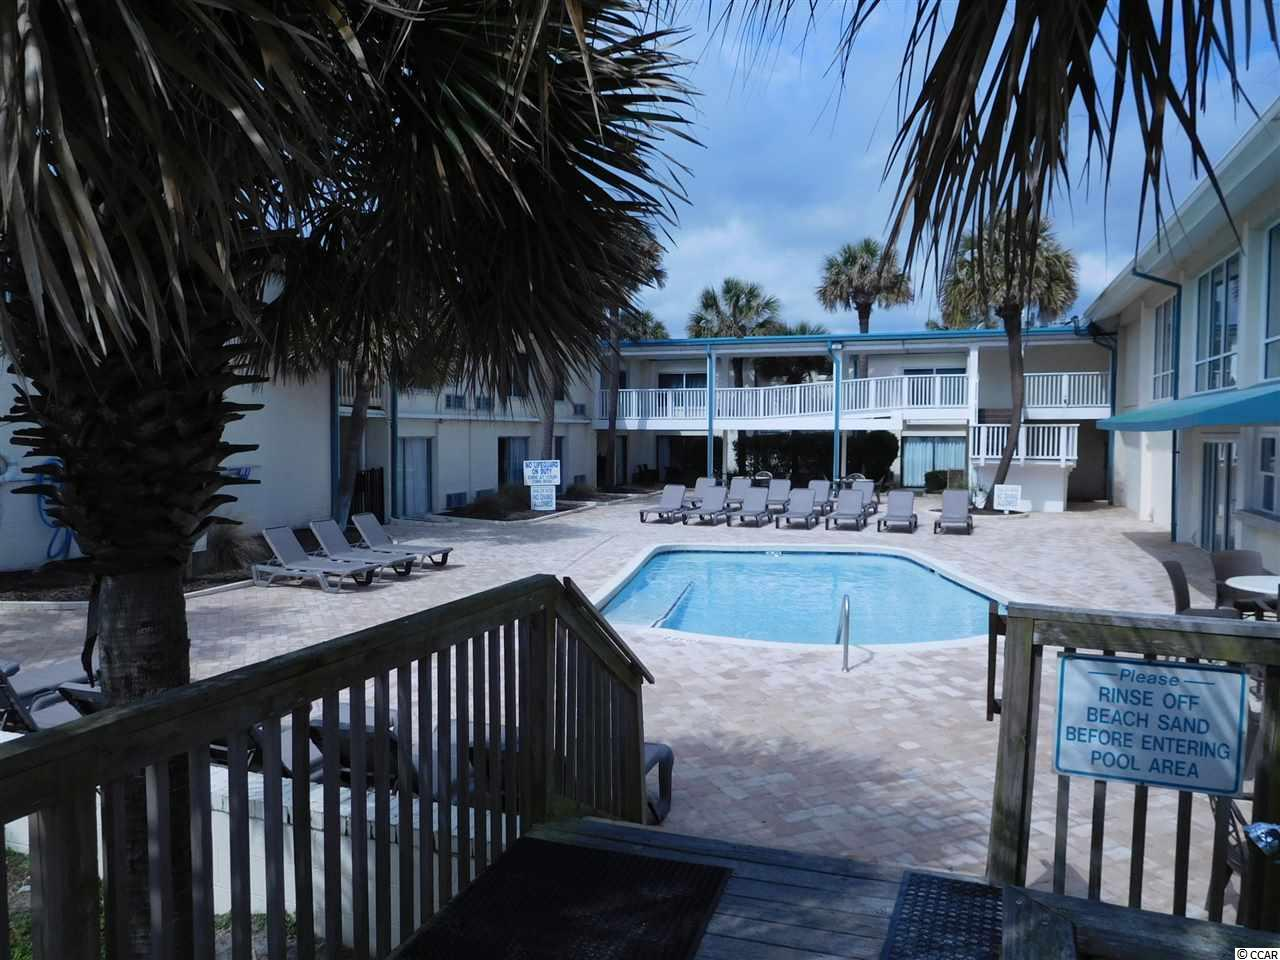 A Best Buy for an oceanview condo which overlooks both the pool and beach. Needs some TLC. The Inn features two oceanfront pools and two on-site restaurants with formal dining an a casual beach bar and restaurant. No need to leave the beach area. Close to Brookgreen Gardens and historic Georgetown, SC's third oldest city. The square footage is approximate and not guaranteed. The Buyer is responsible for verification.